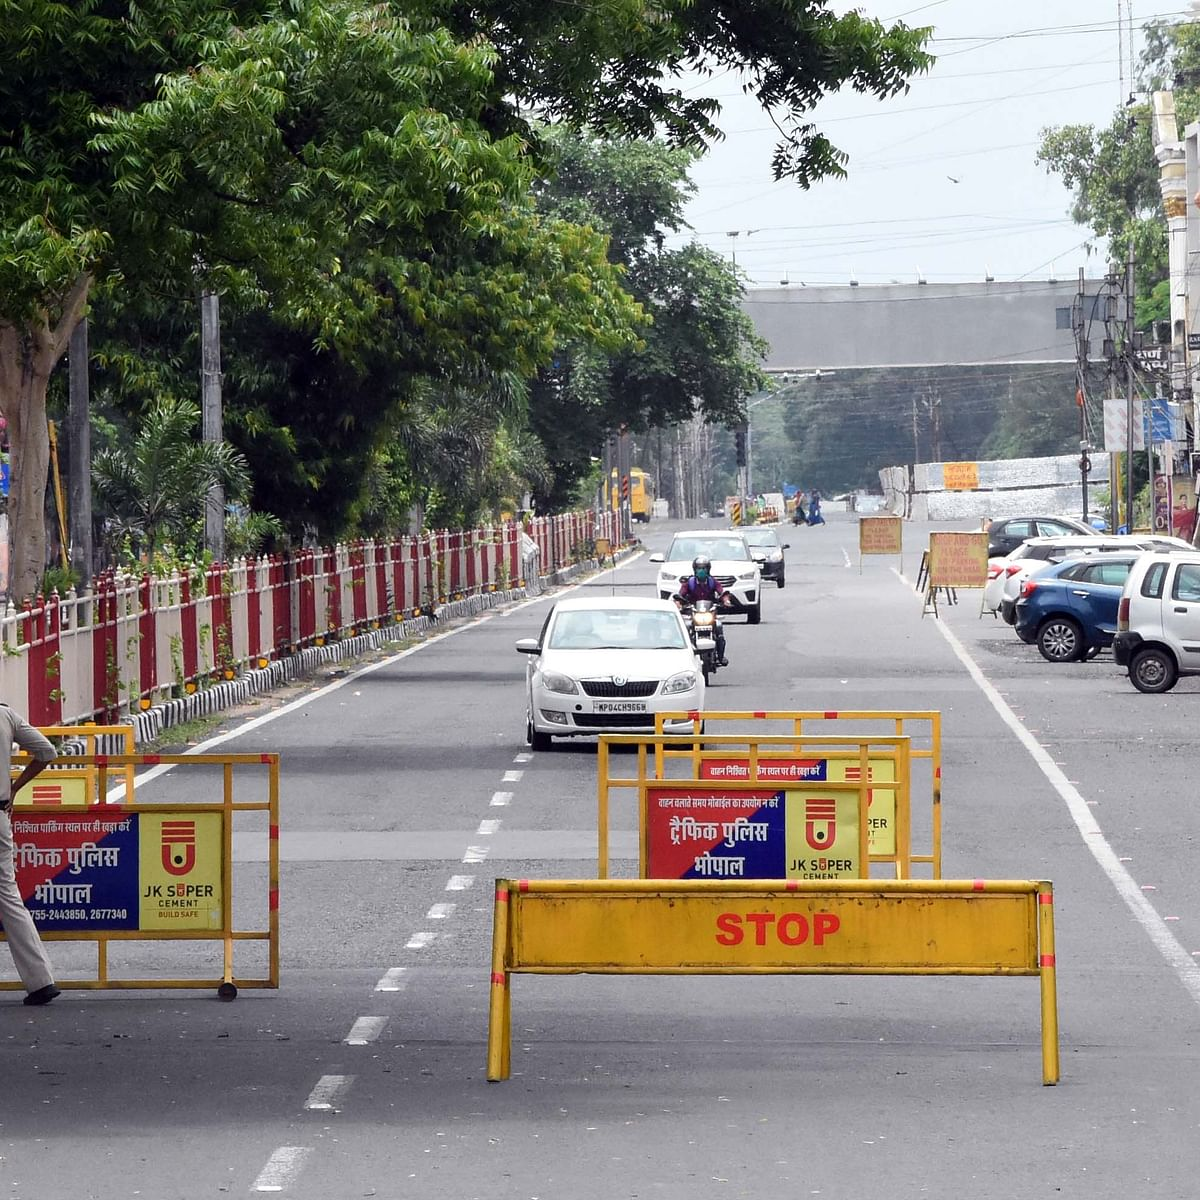 Coronavirus in Bhopal: 'Night curfew' to return, public movement barred except for emergency purpose